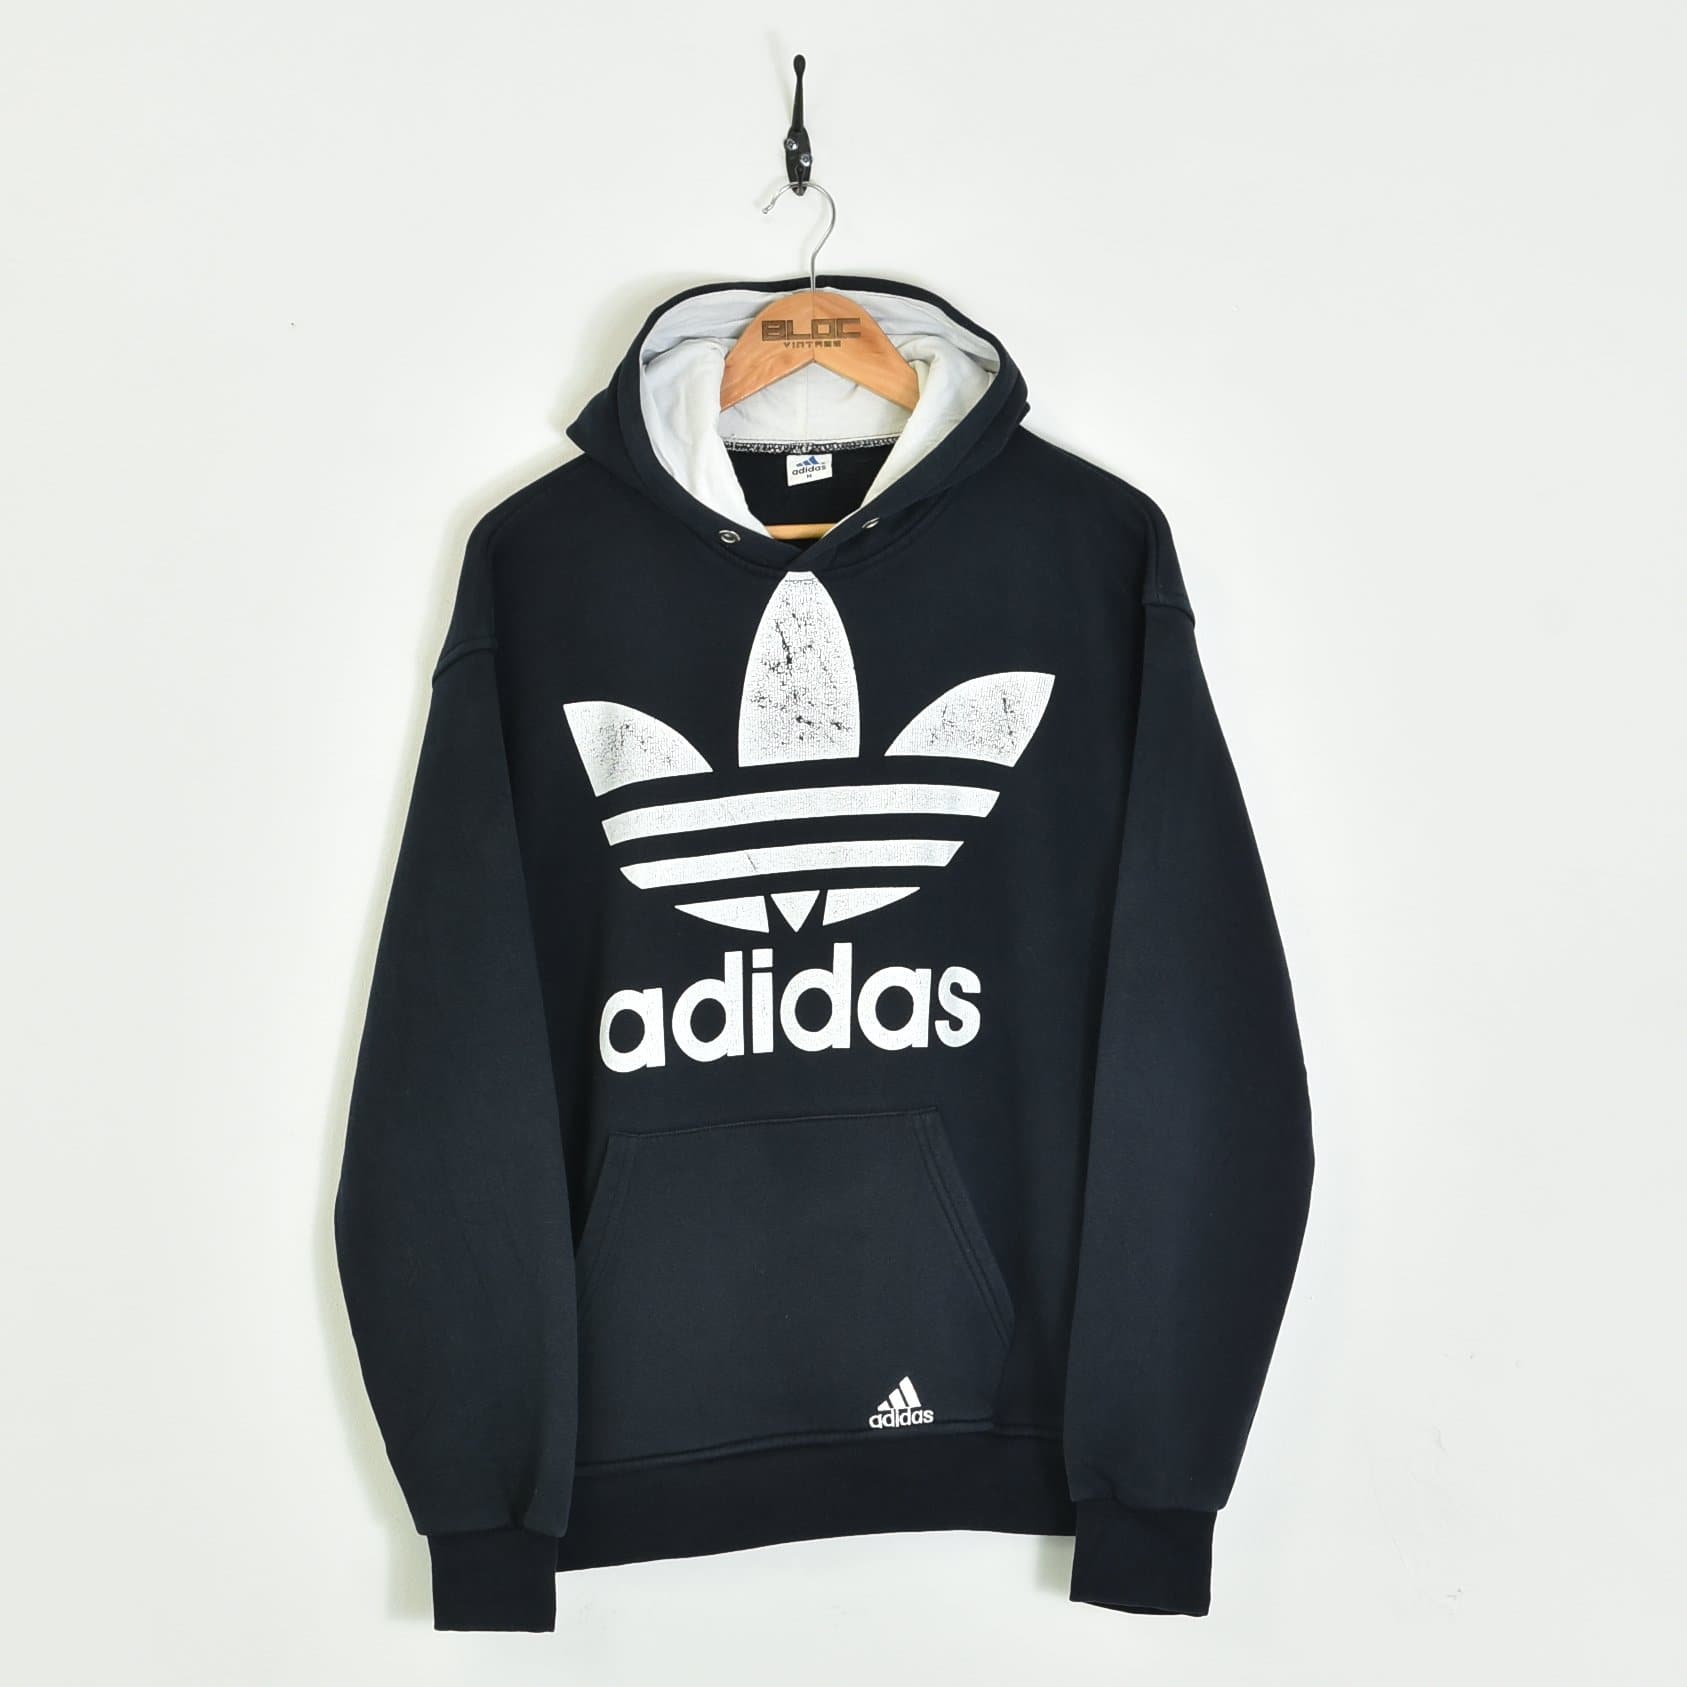 Punto de referencia exceso Gran cantidad  Bootleg Adidas Hooded Sweatshirt Blue Medium | BLOC Vintage Clothing